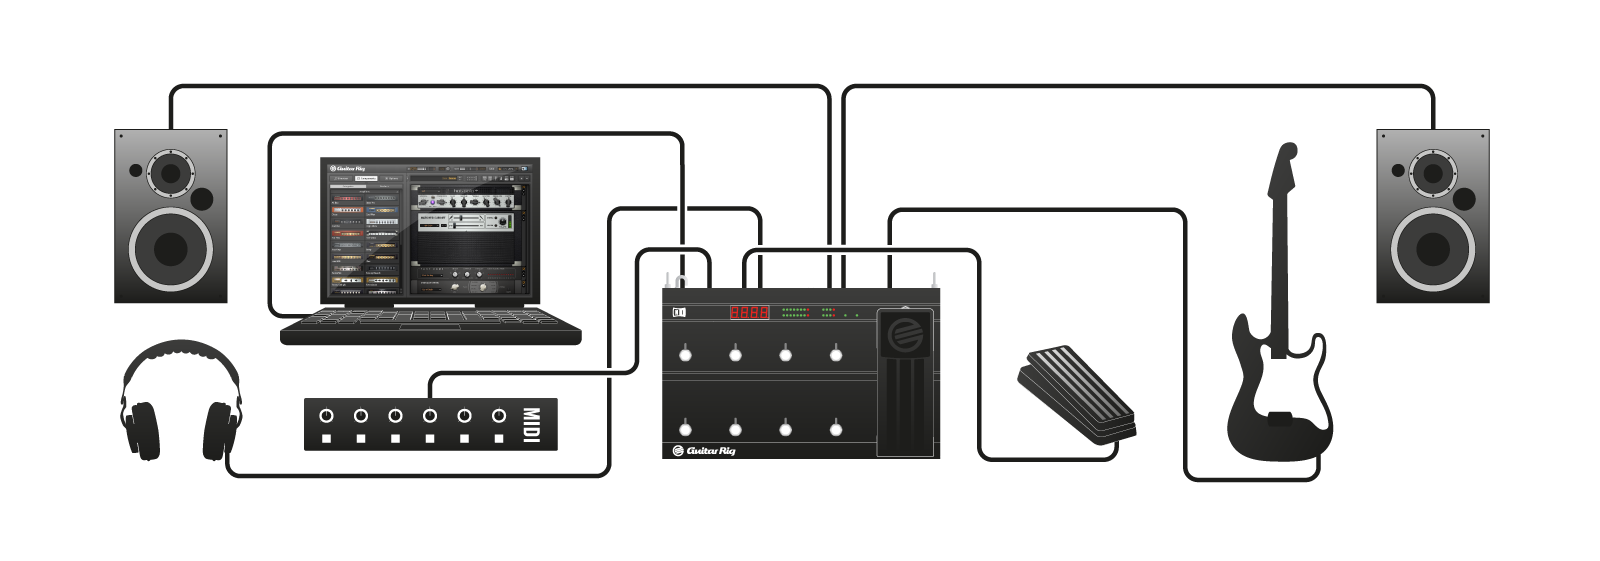 Connecting Guitar Amp To Computer Techpowerup Forums